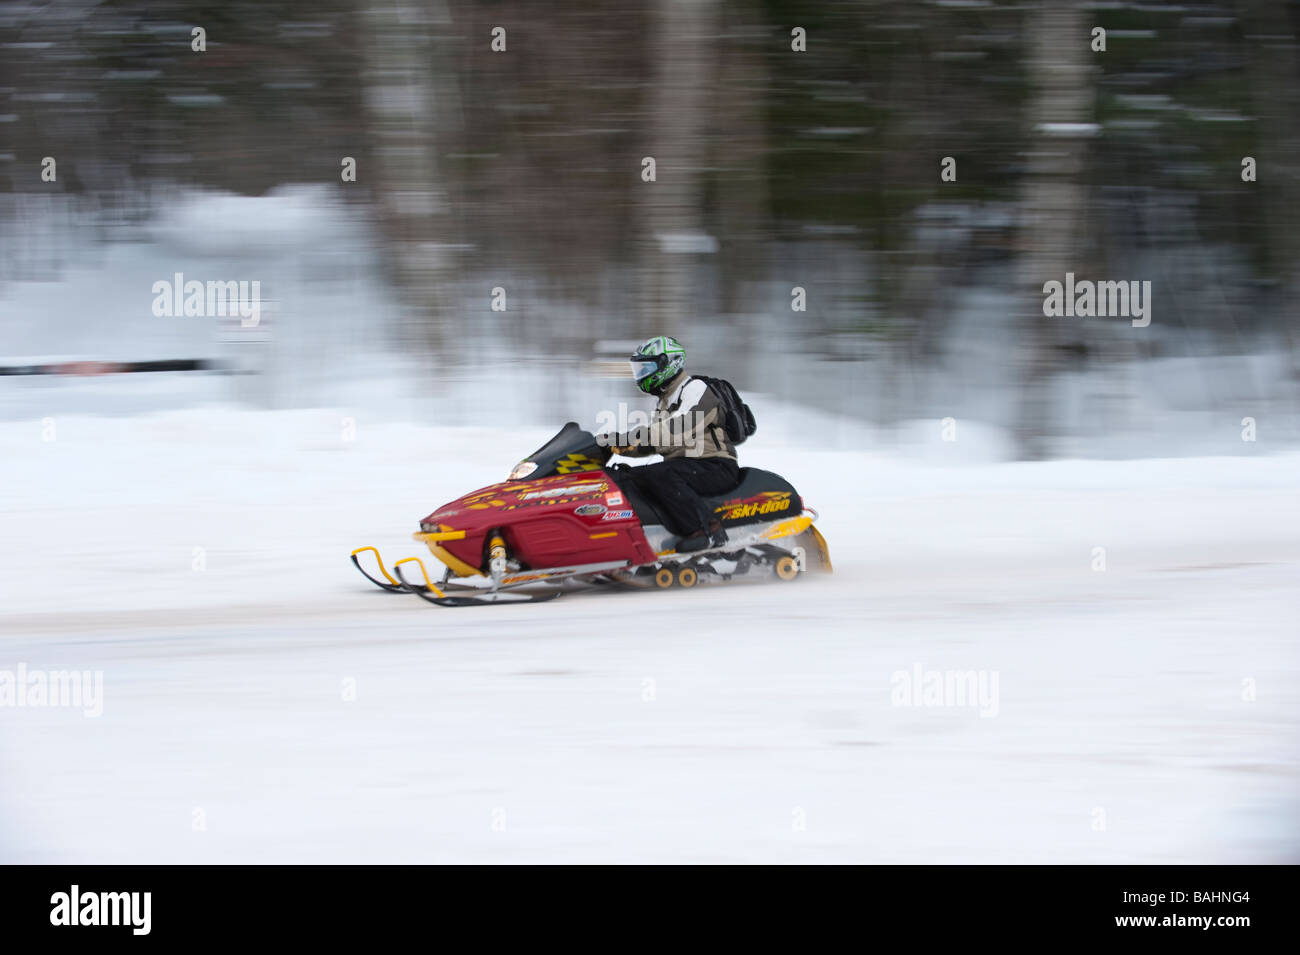 A SNOWMOBILE IN MOTION DRIVES ON A TRAIL THROUGH THE PORCUPINE MOUNTAINS STATE PARK - Stock Image